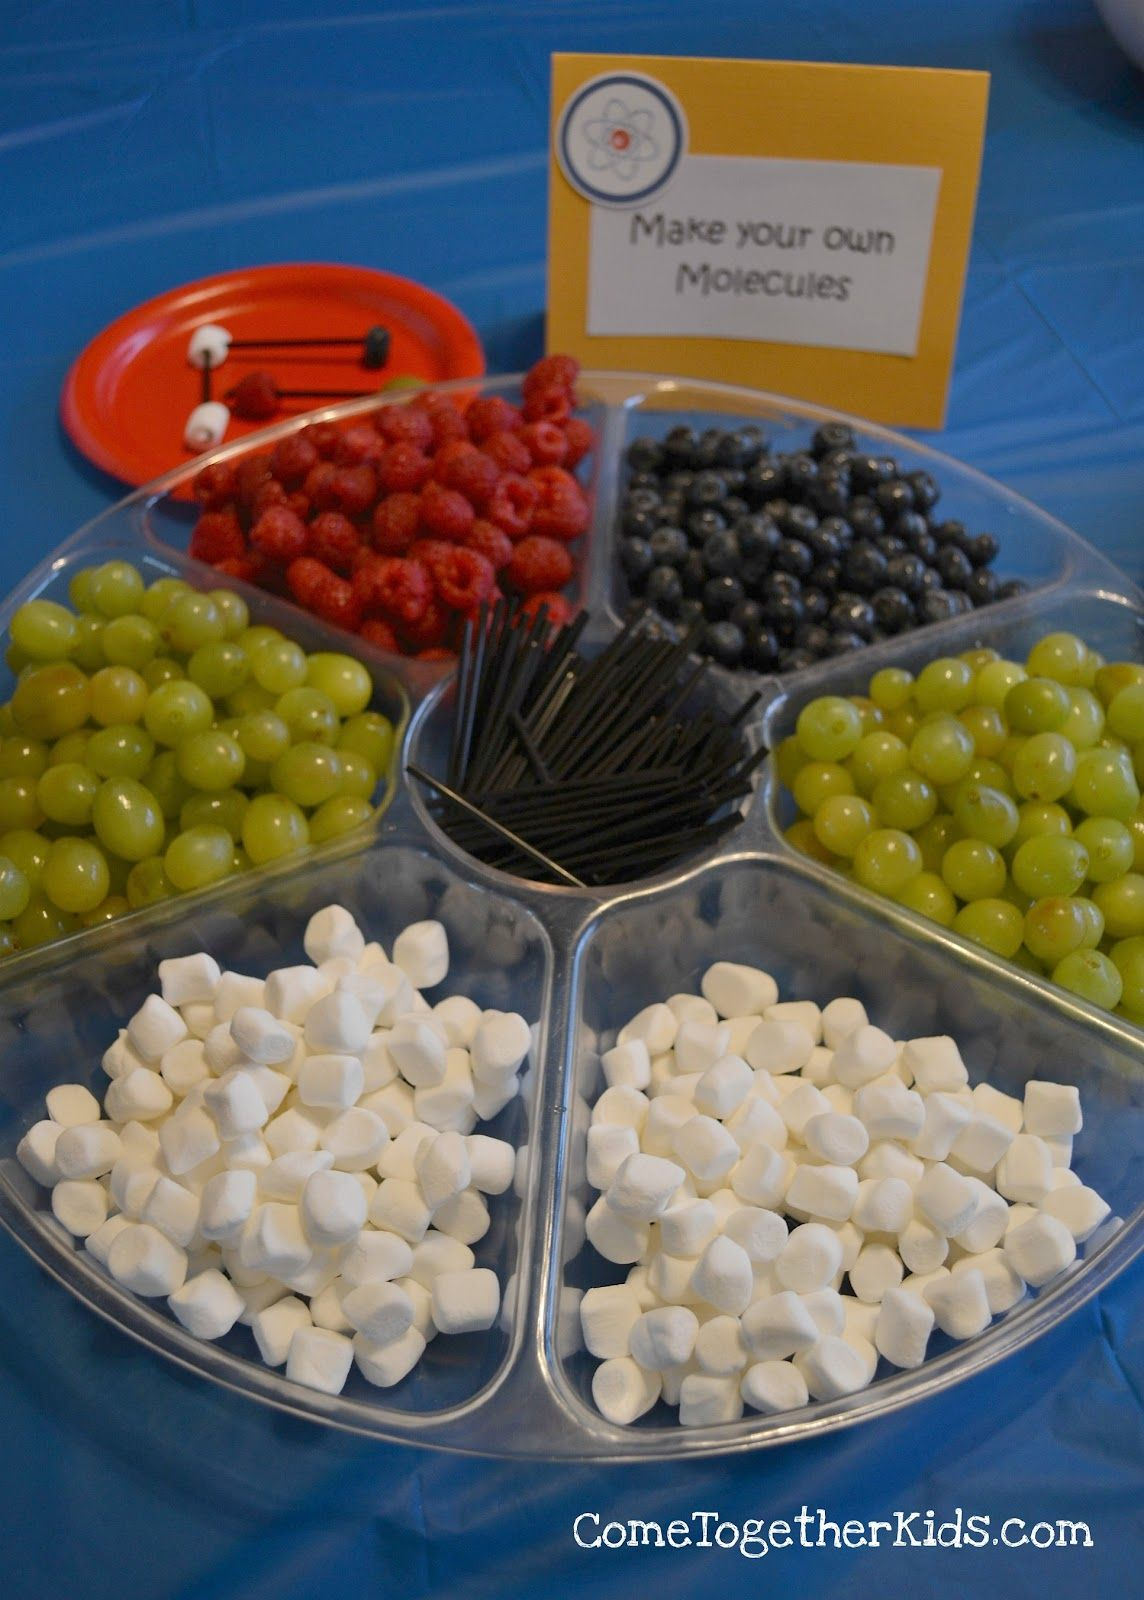 Come Together Kids Super Science Birthday Party I Like The Make Your Own Molecules And